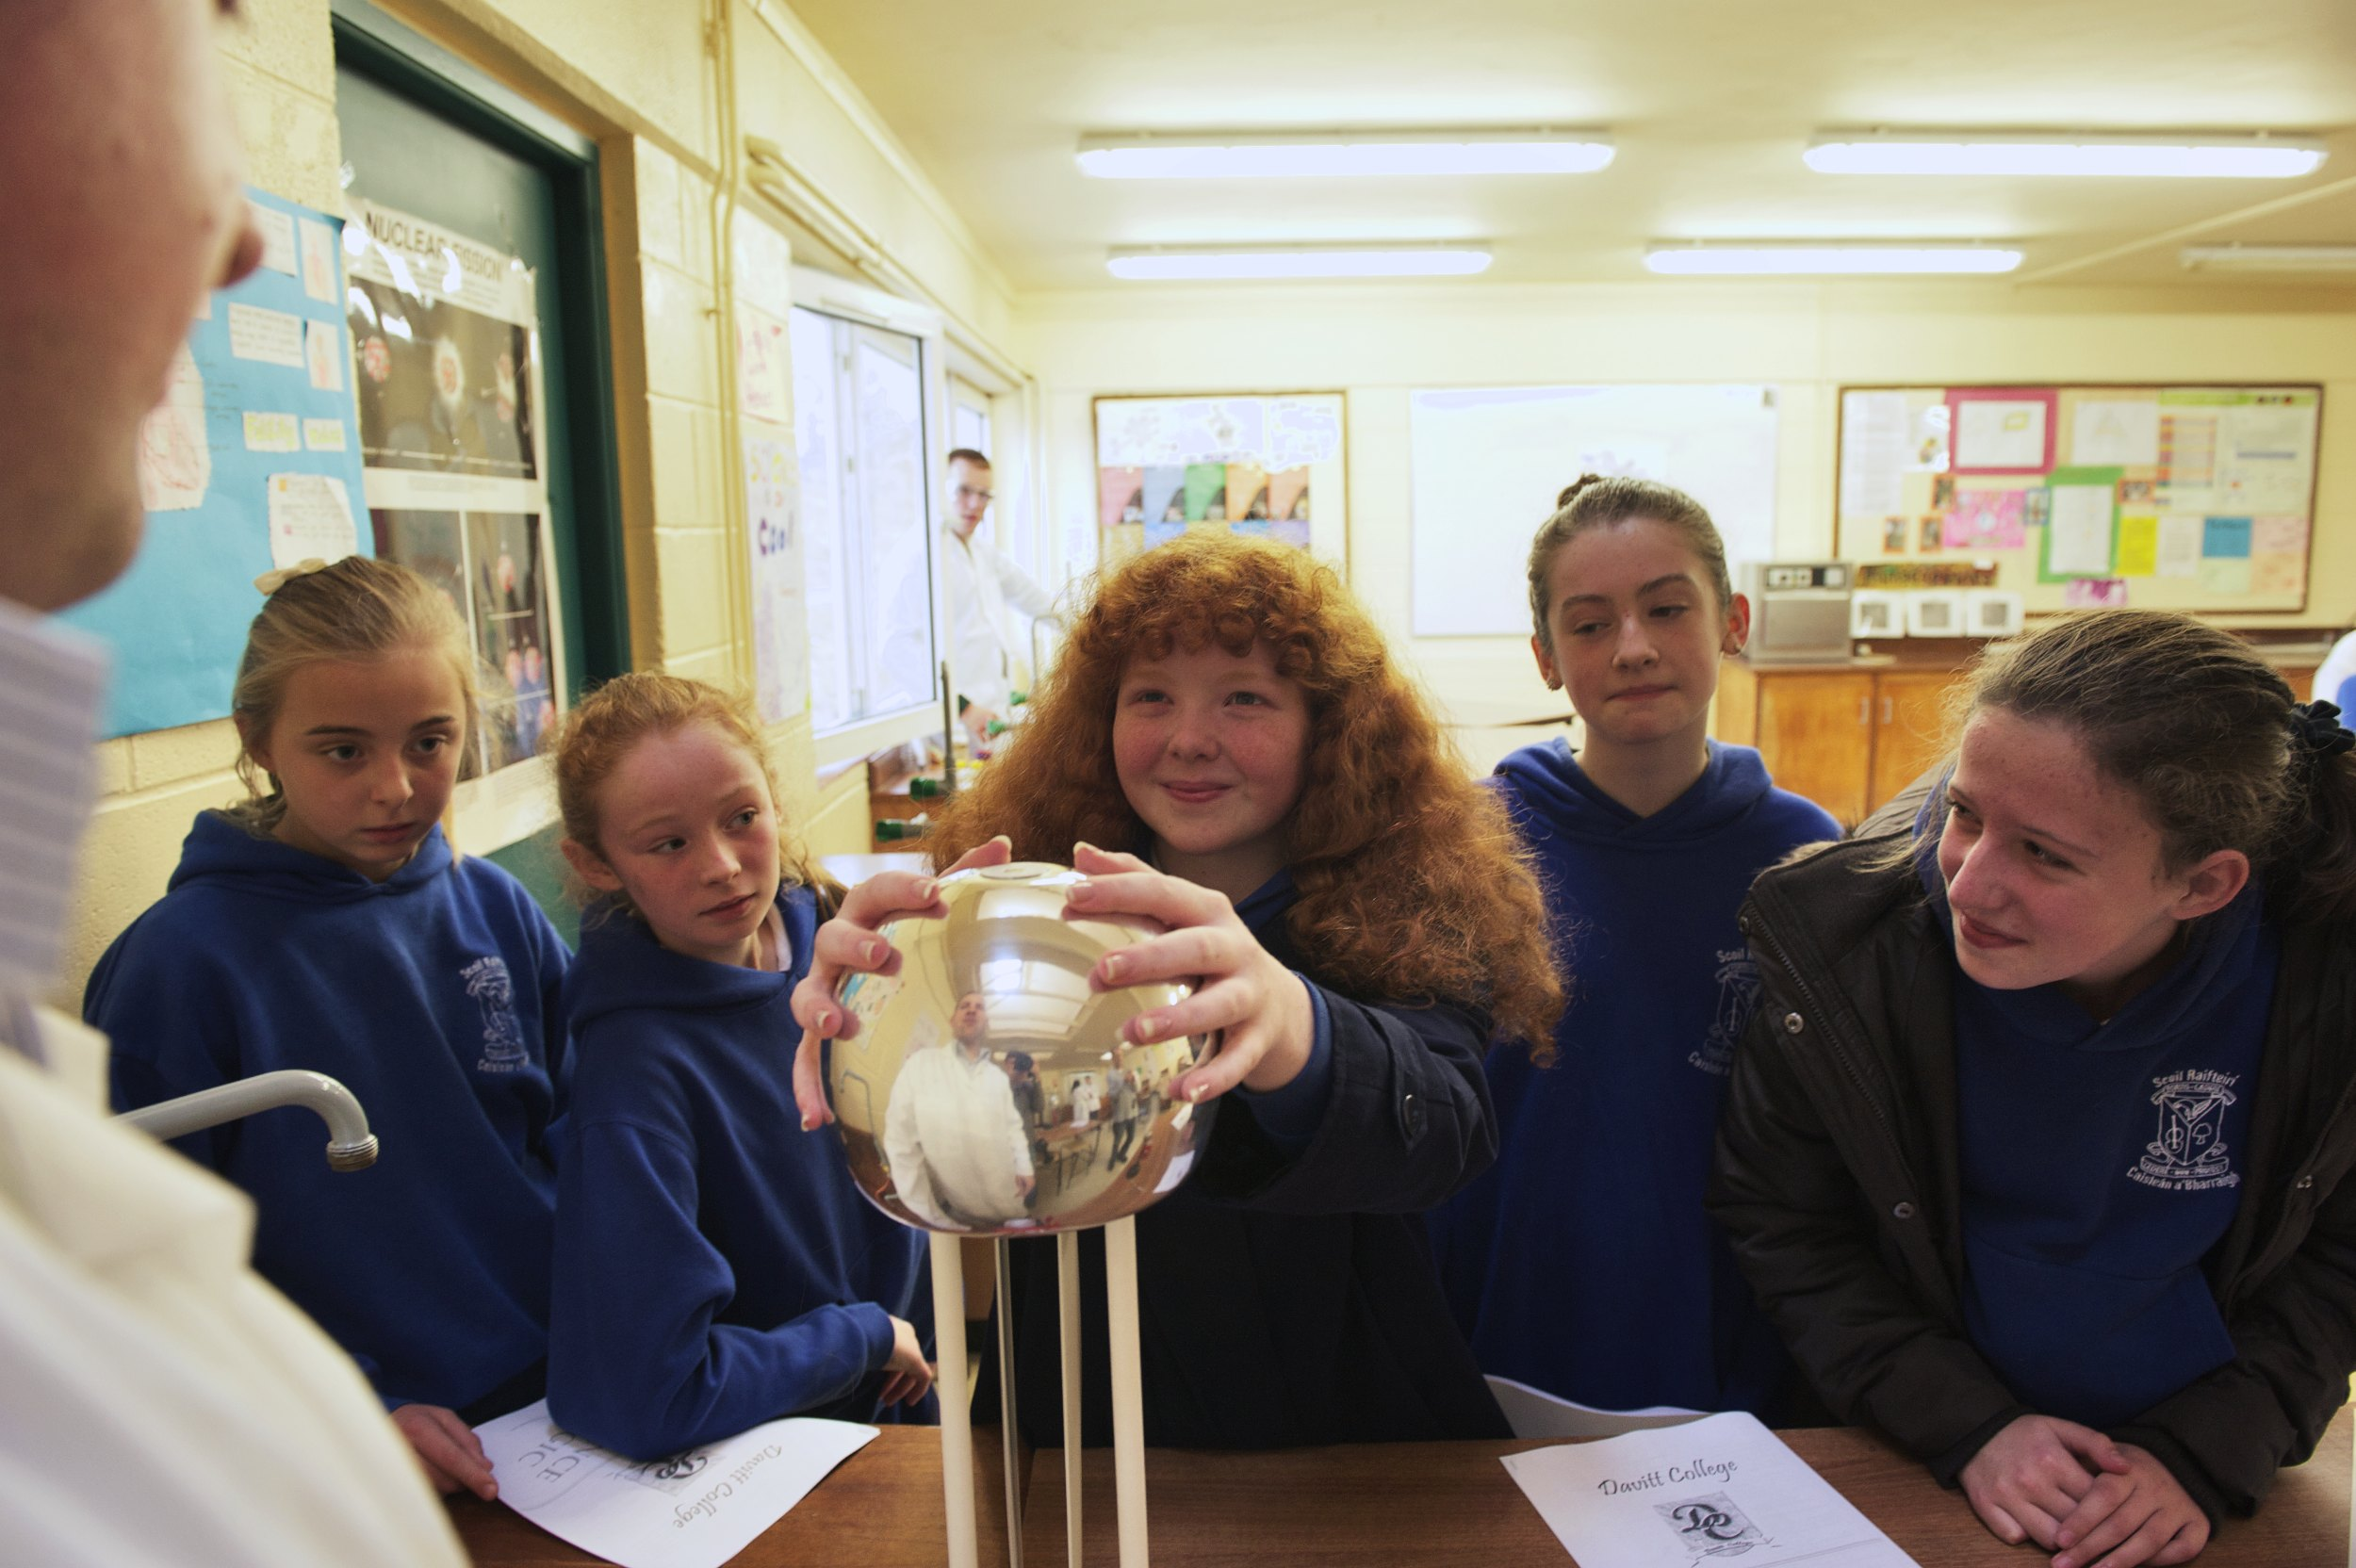 Students from Scoil Raifteiri, Castlebar are intrigued as they are shown Static Electricity during Science Week at Davitt College, a three-day science event for sixth class students from national schools in Castlebar and surrounding districts